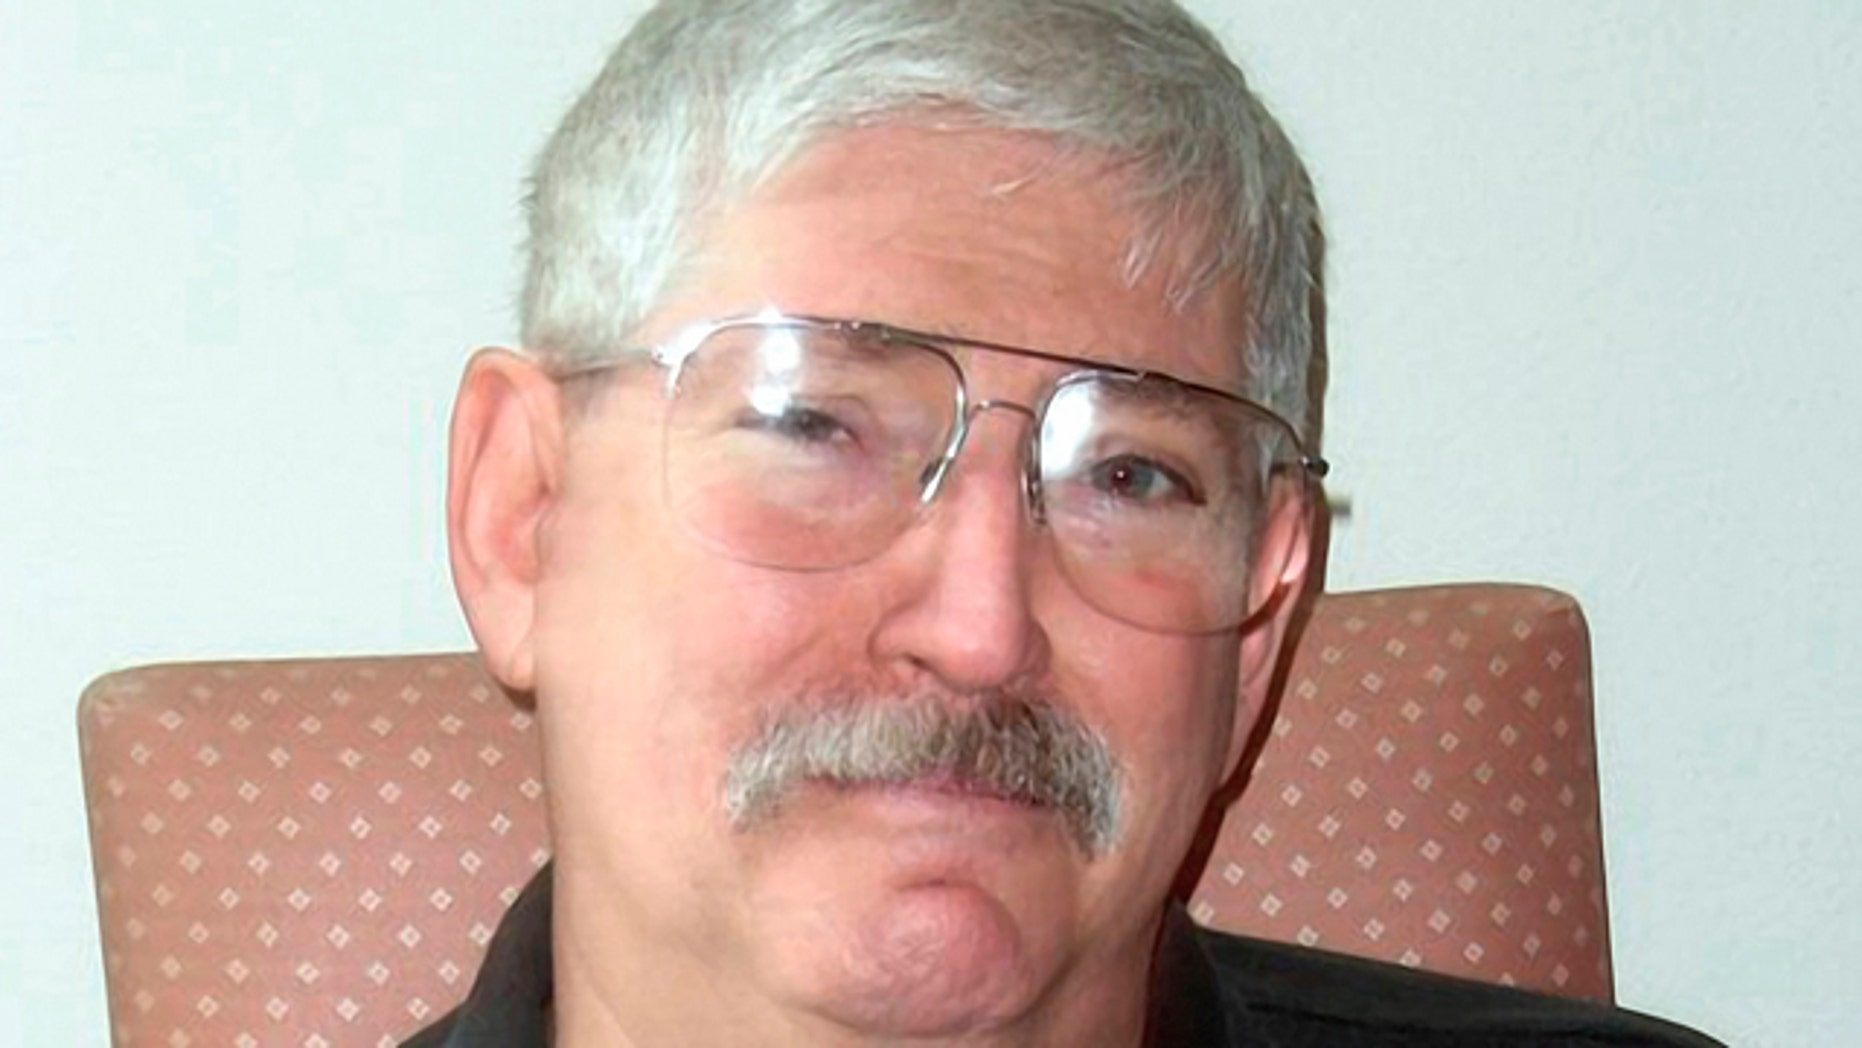 In this undated photo provided by Christine Levinson, Robert Levinson is shown.